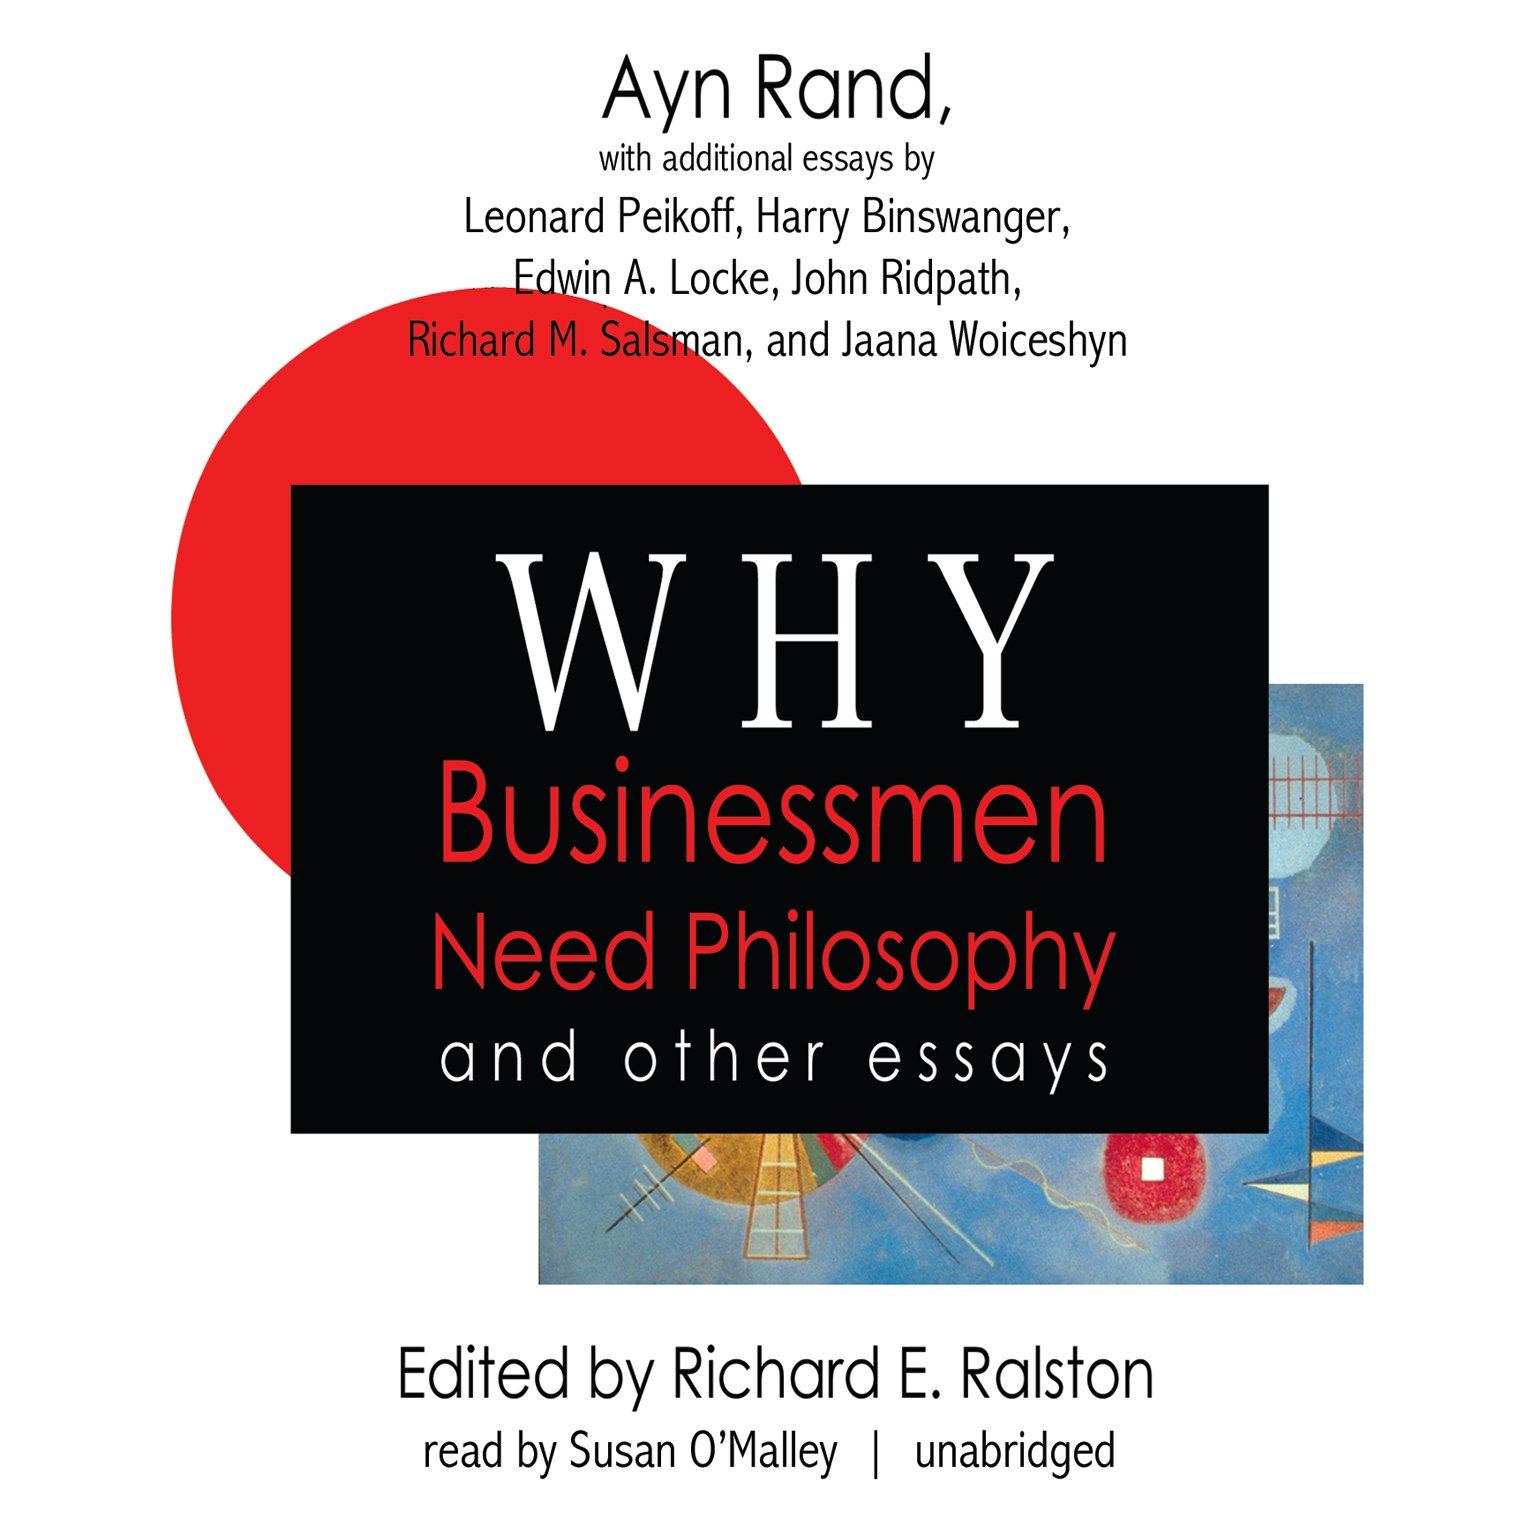 Why Businessmen Need Philosophy - Ayn Rand - reviews for audiobook - reviews, quotes, summary